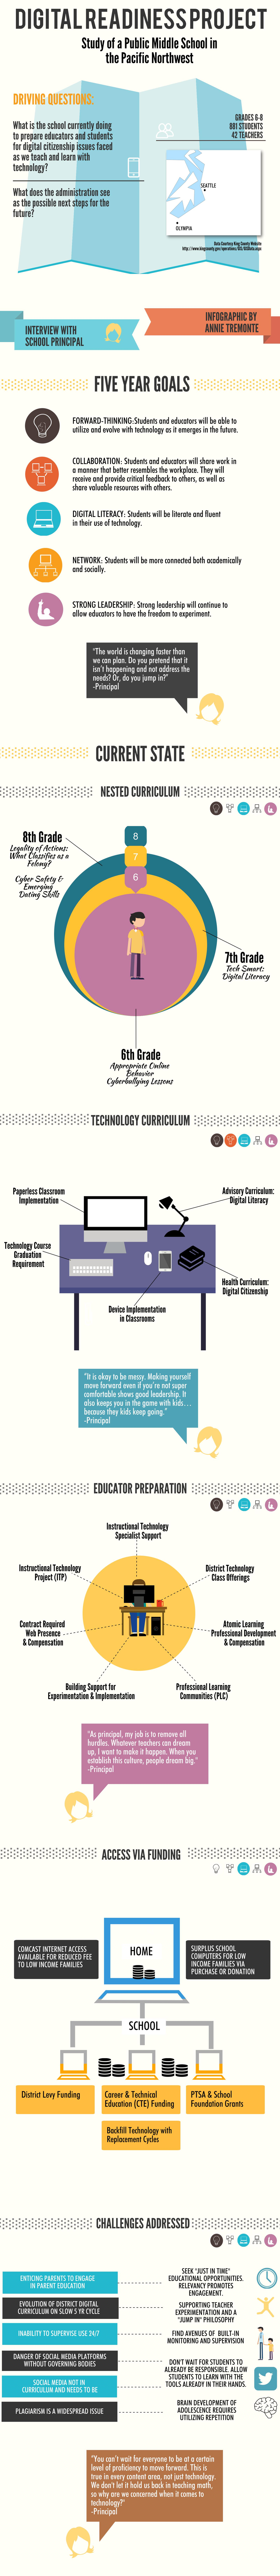 DigitalReadinessPublicInfographic